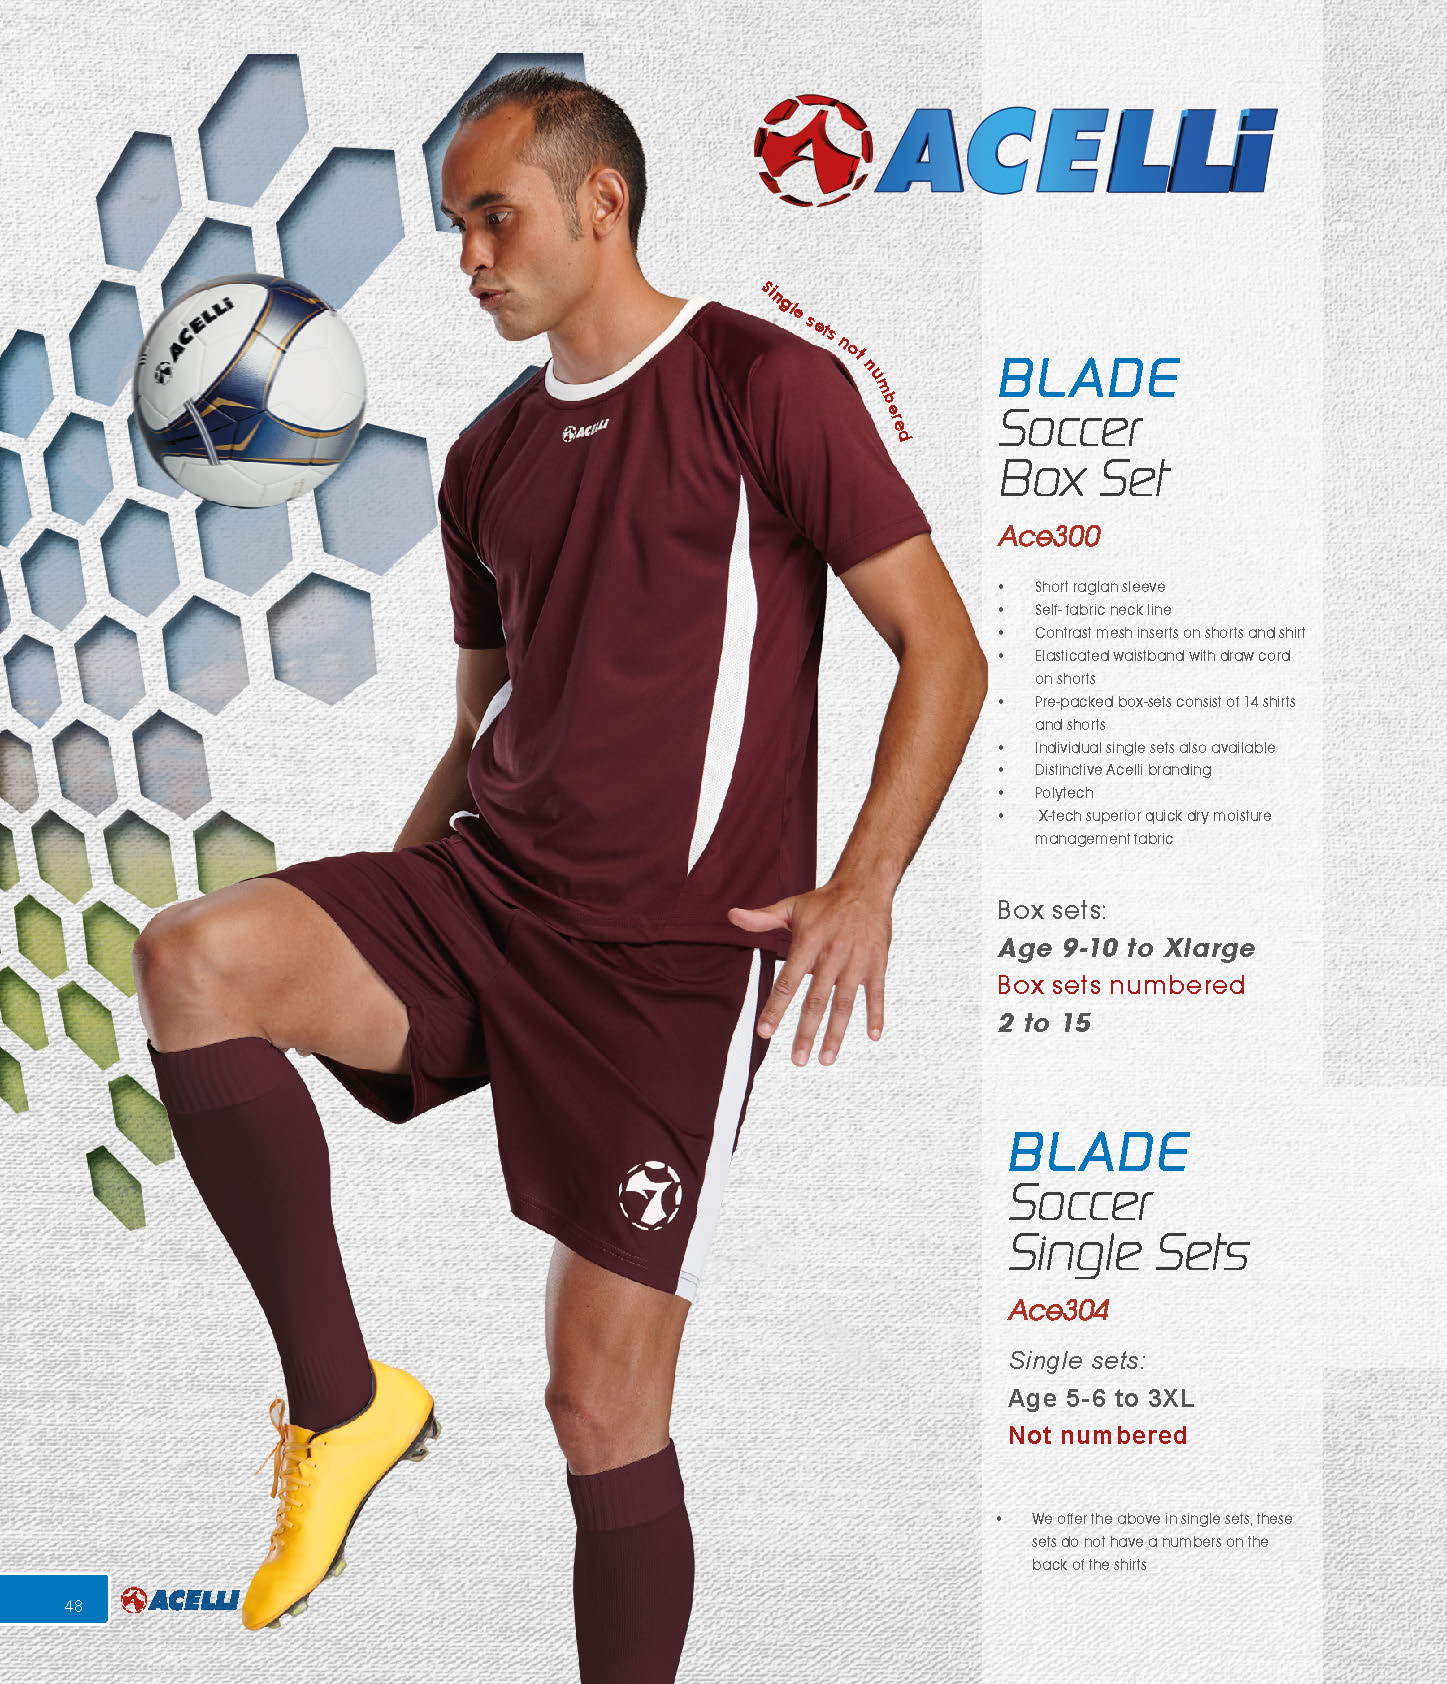 Acelli Blade Soccer Box Set